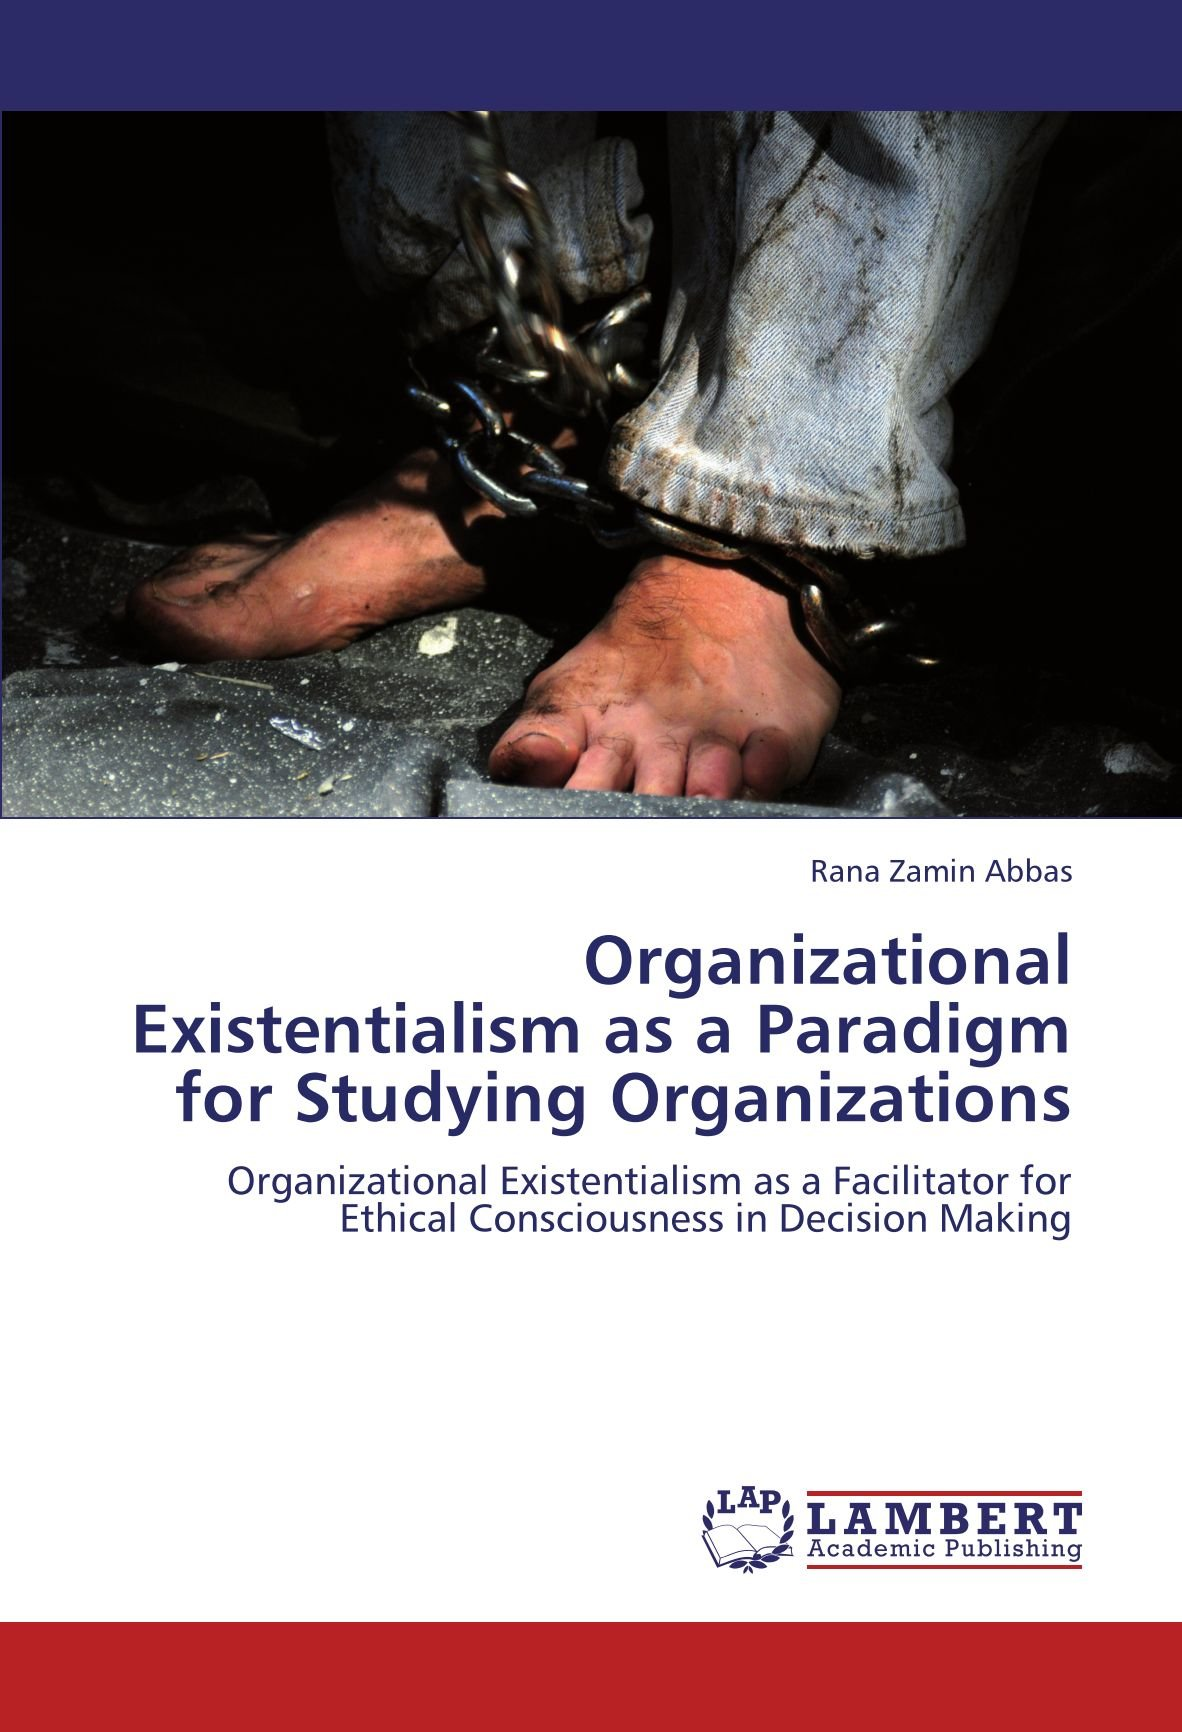 Download Organizational Existentialism as a Paradigm for Studying Organizations: Organizational Existentialism as a Facilitator for Ethical Consciousness in Decision Making PDF